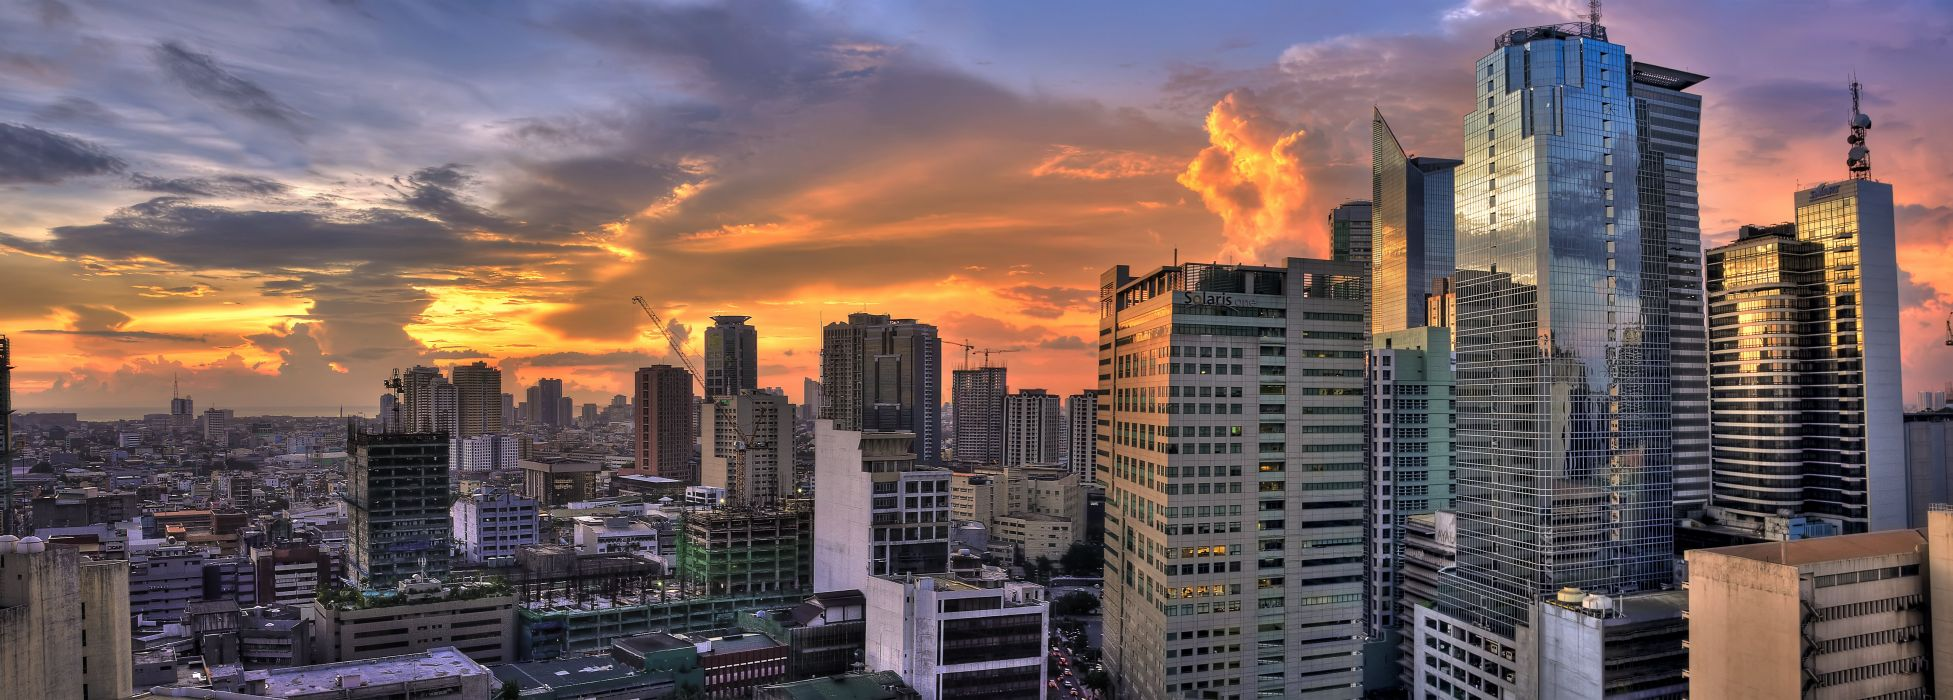 Houses Evening Philippines Clouds Cities wallpaper